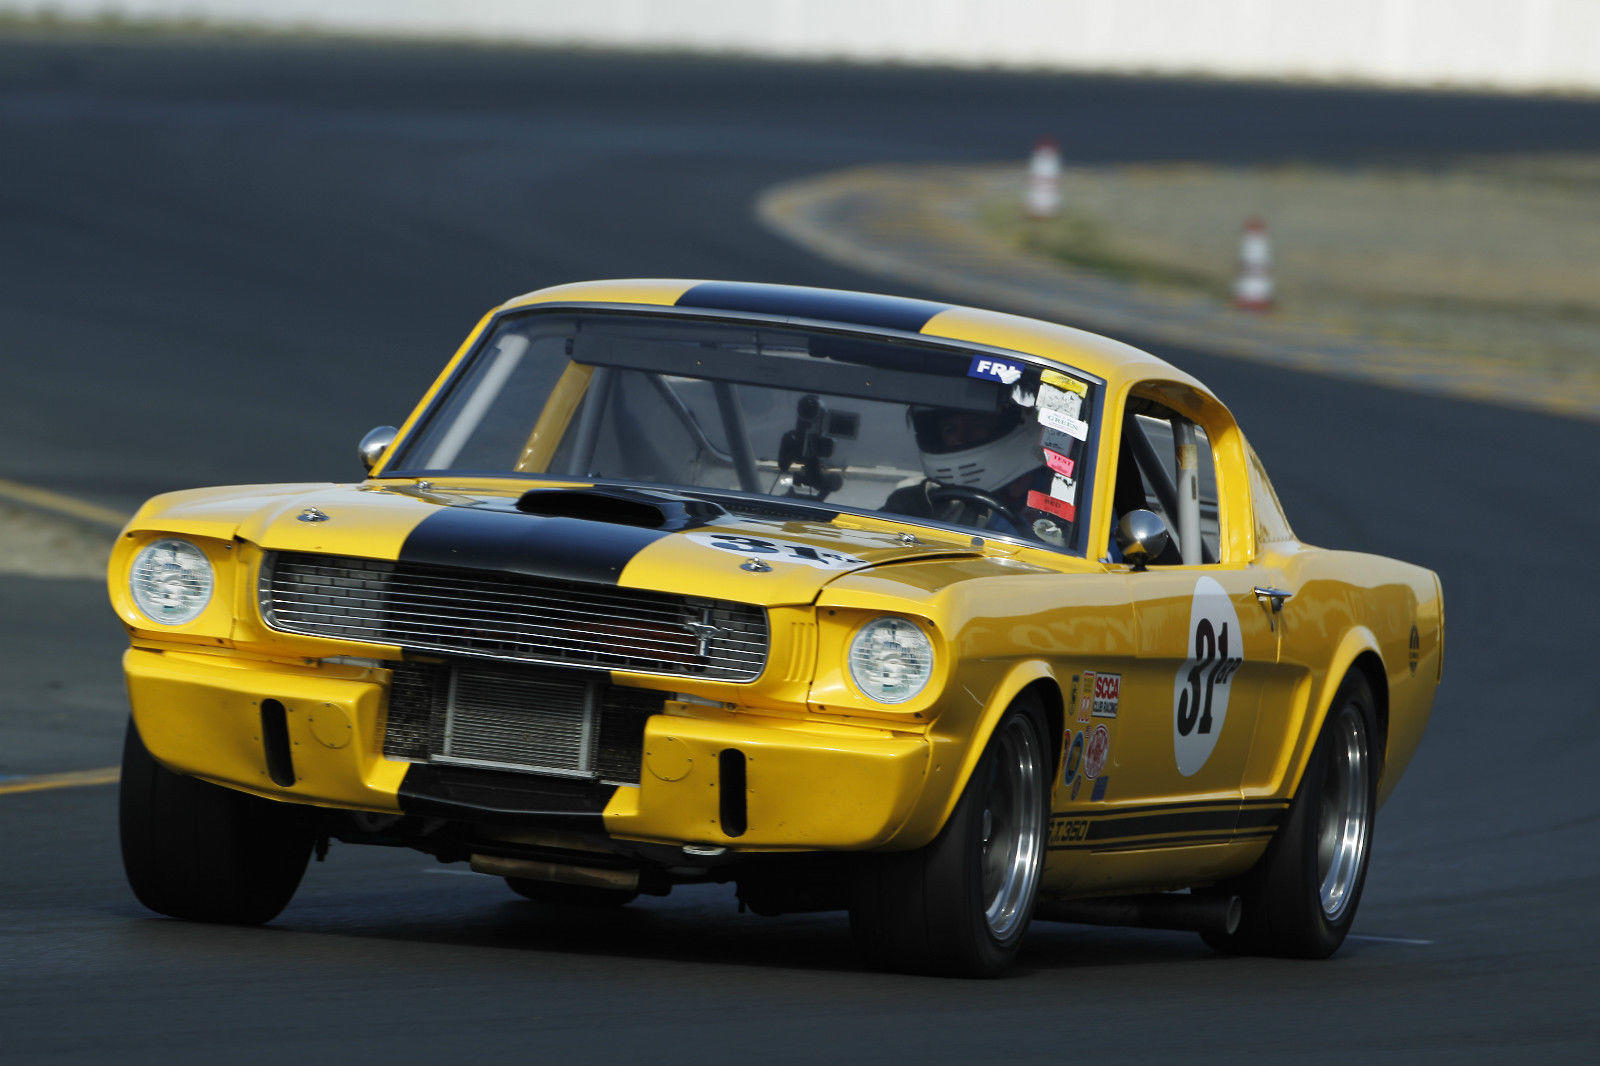 A RARE Original 1966 Shelby GT350 Vintage Race Car